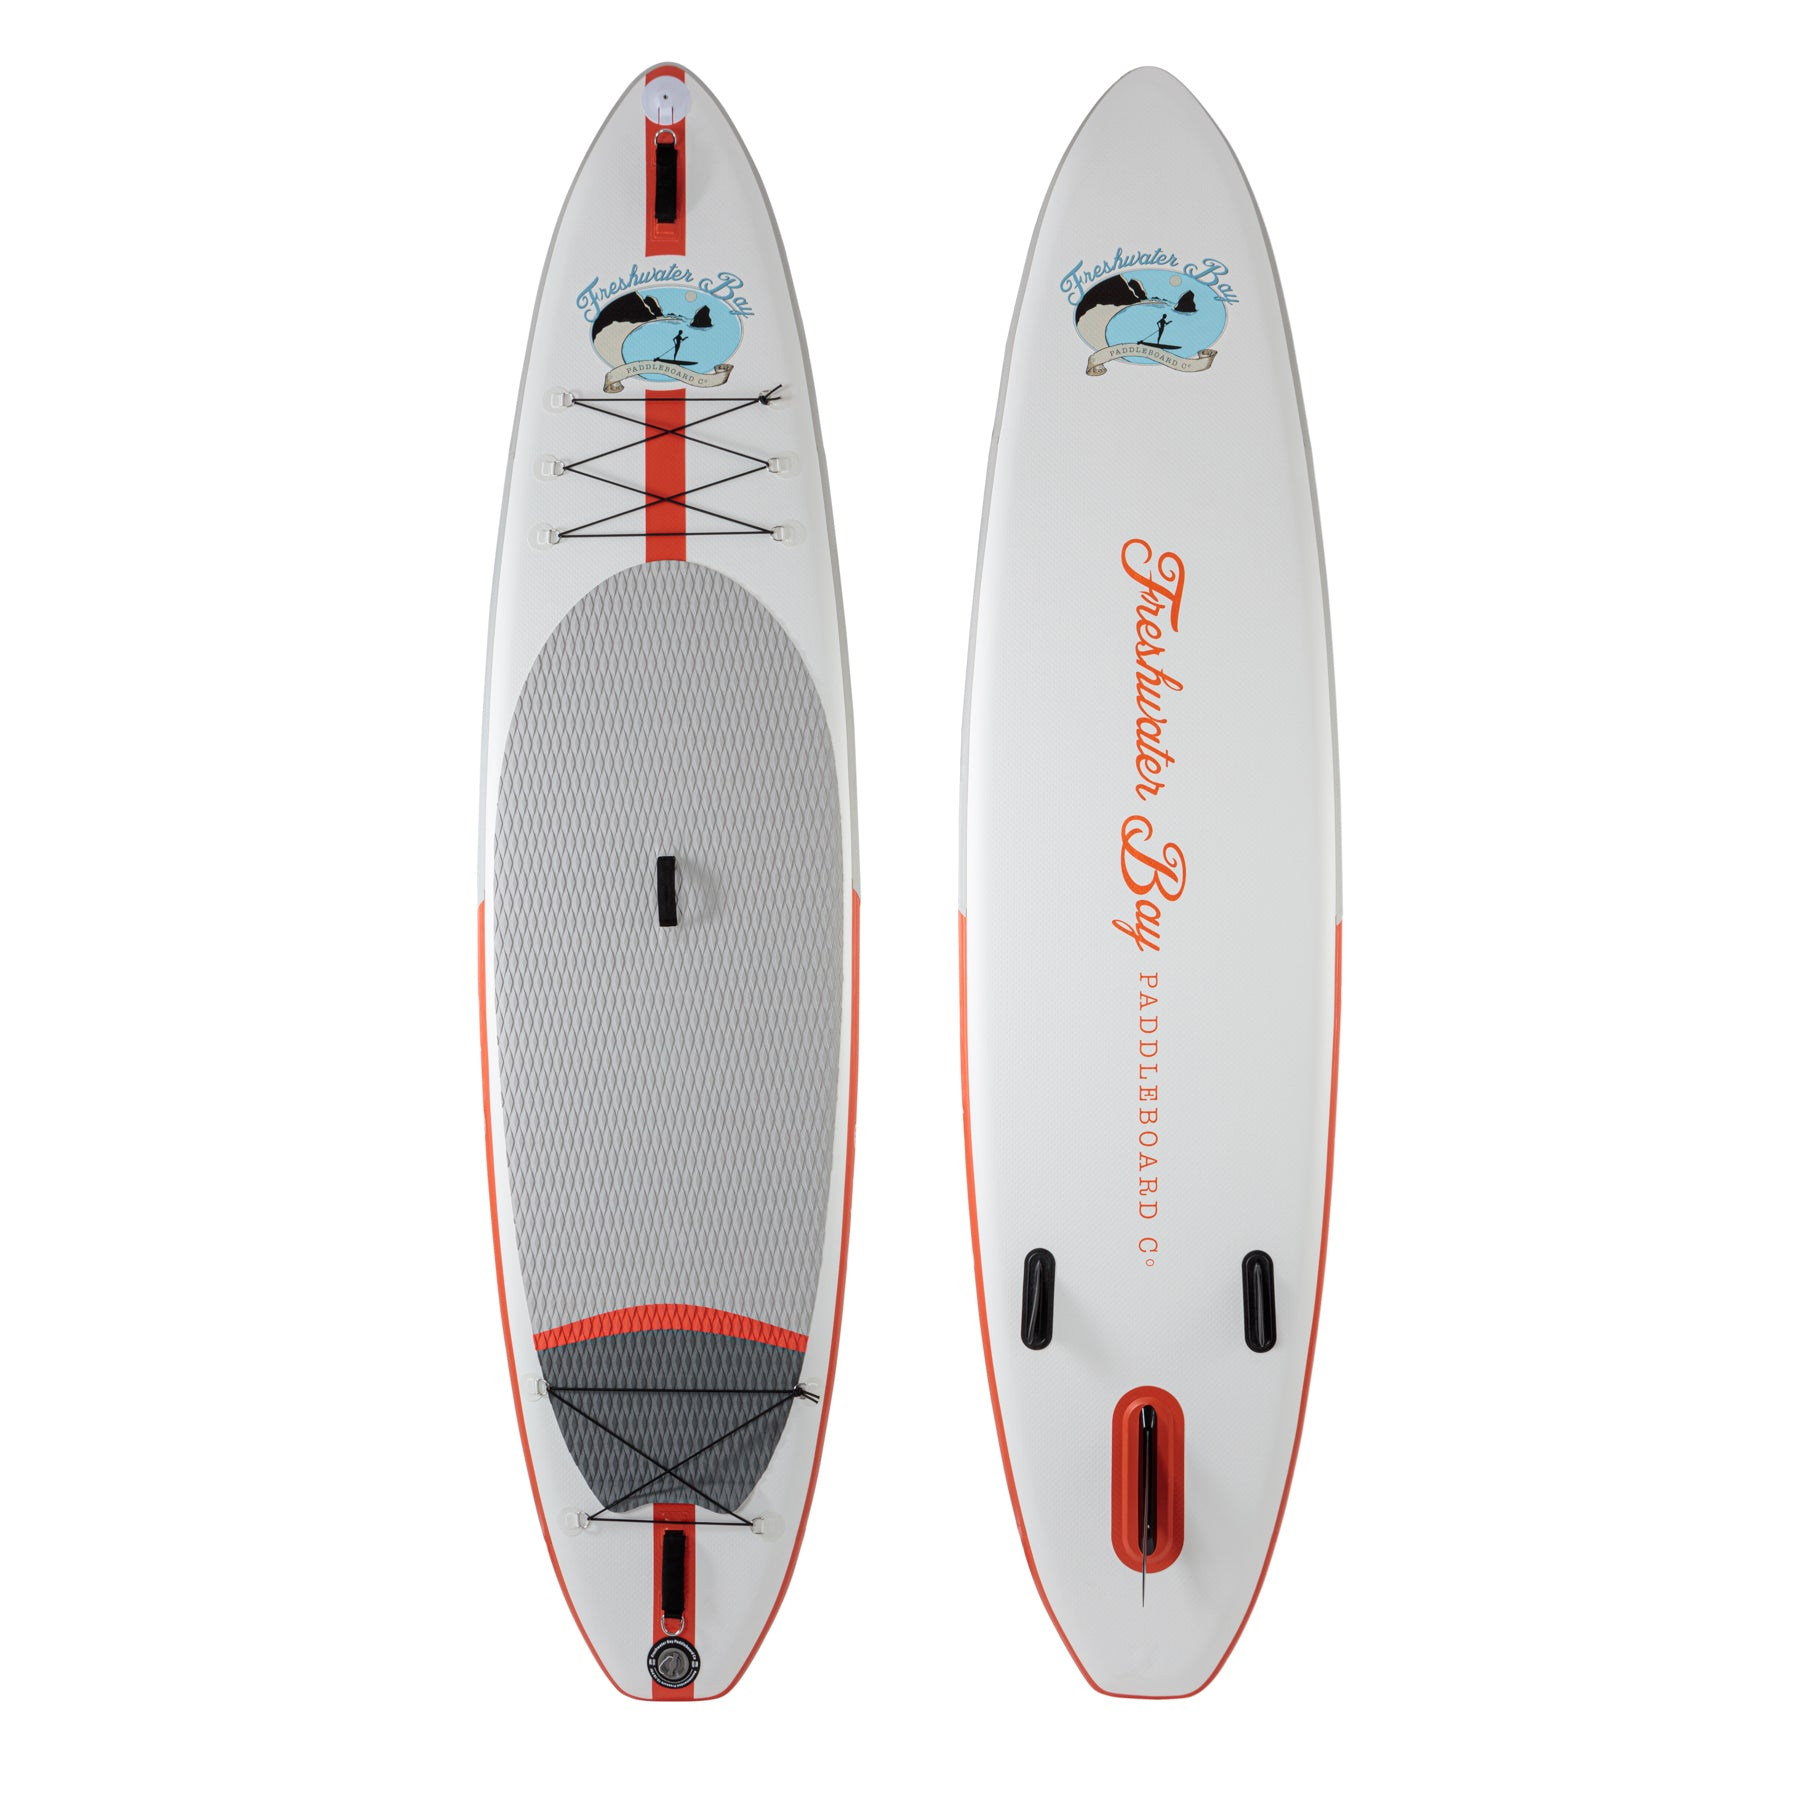 Freshwater Bay Paddleboard Co 11'5 Compact SUP